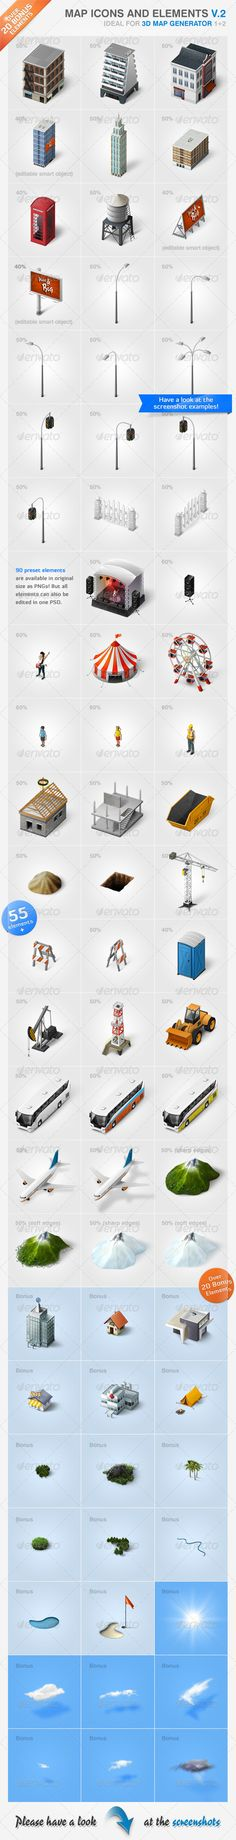 Map Icons and Elements - V.2 - GraphicRiver Item for Sale